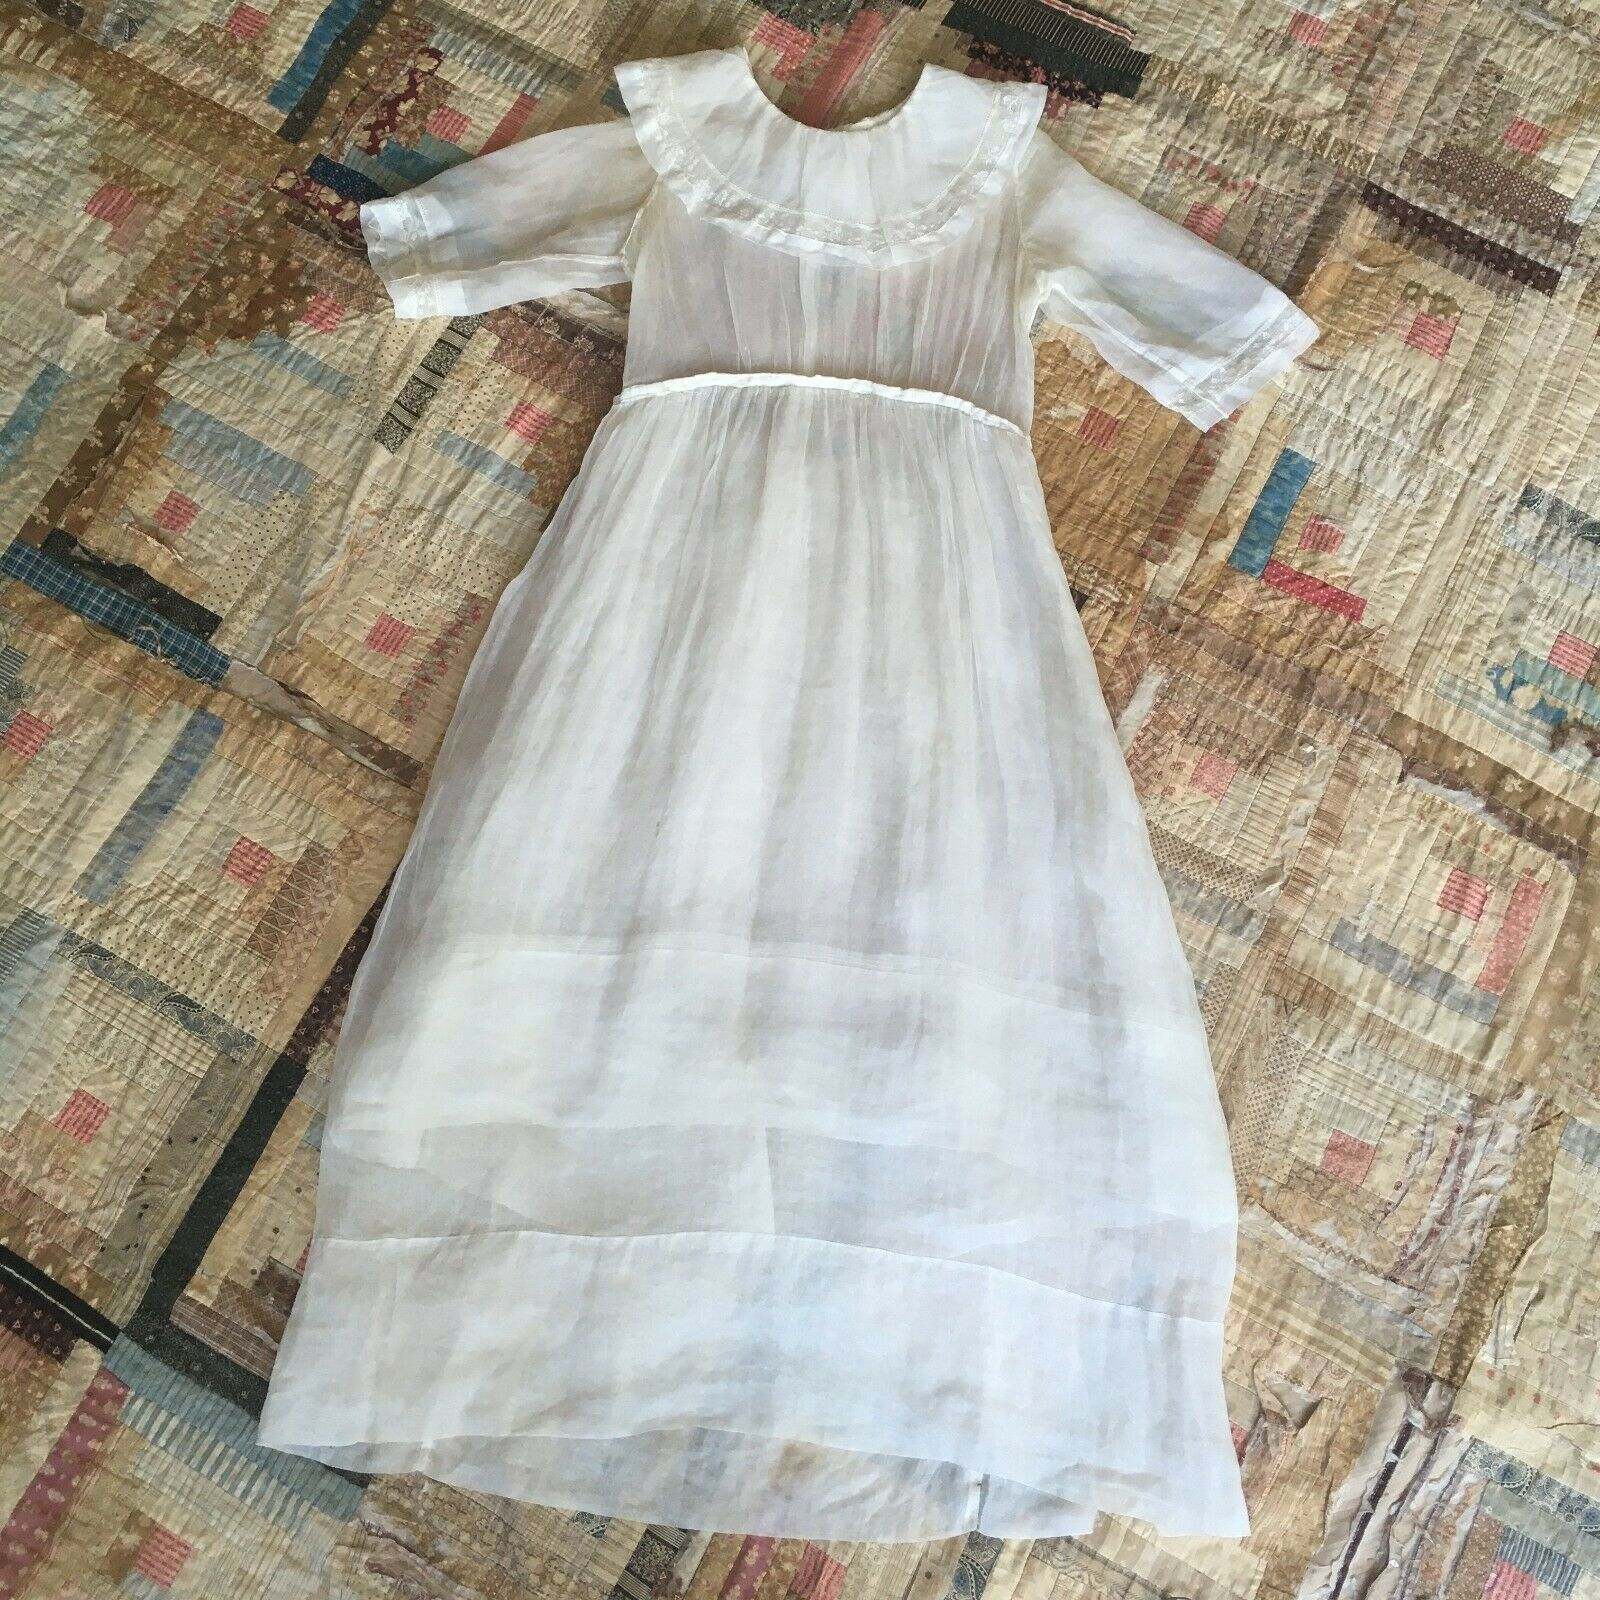 Dreamy and Ethereal Antique Vintage Edwardian Victorian Lawn Dress